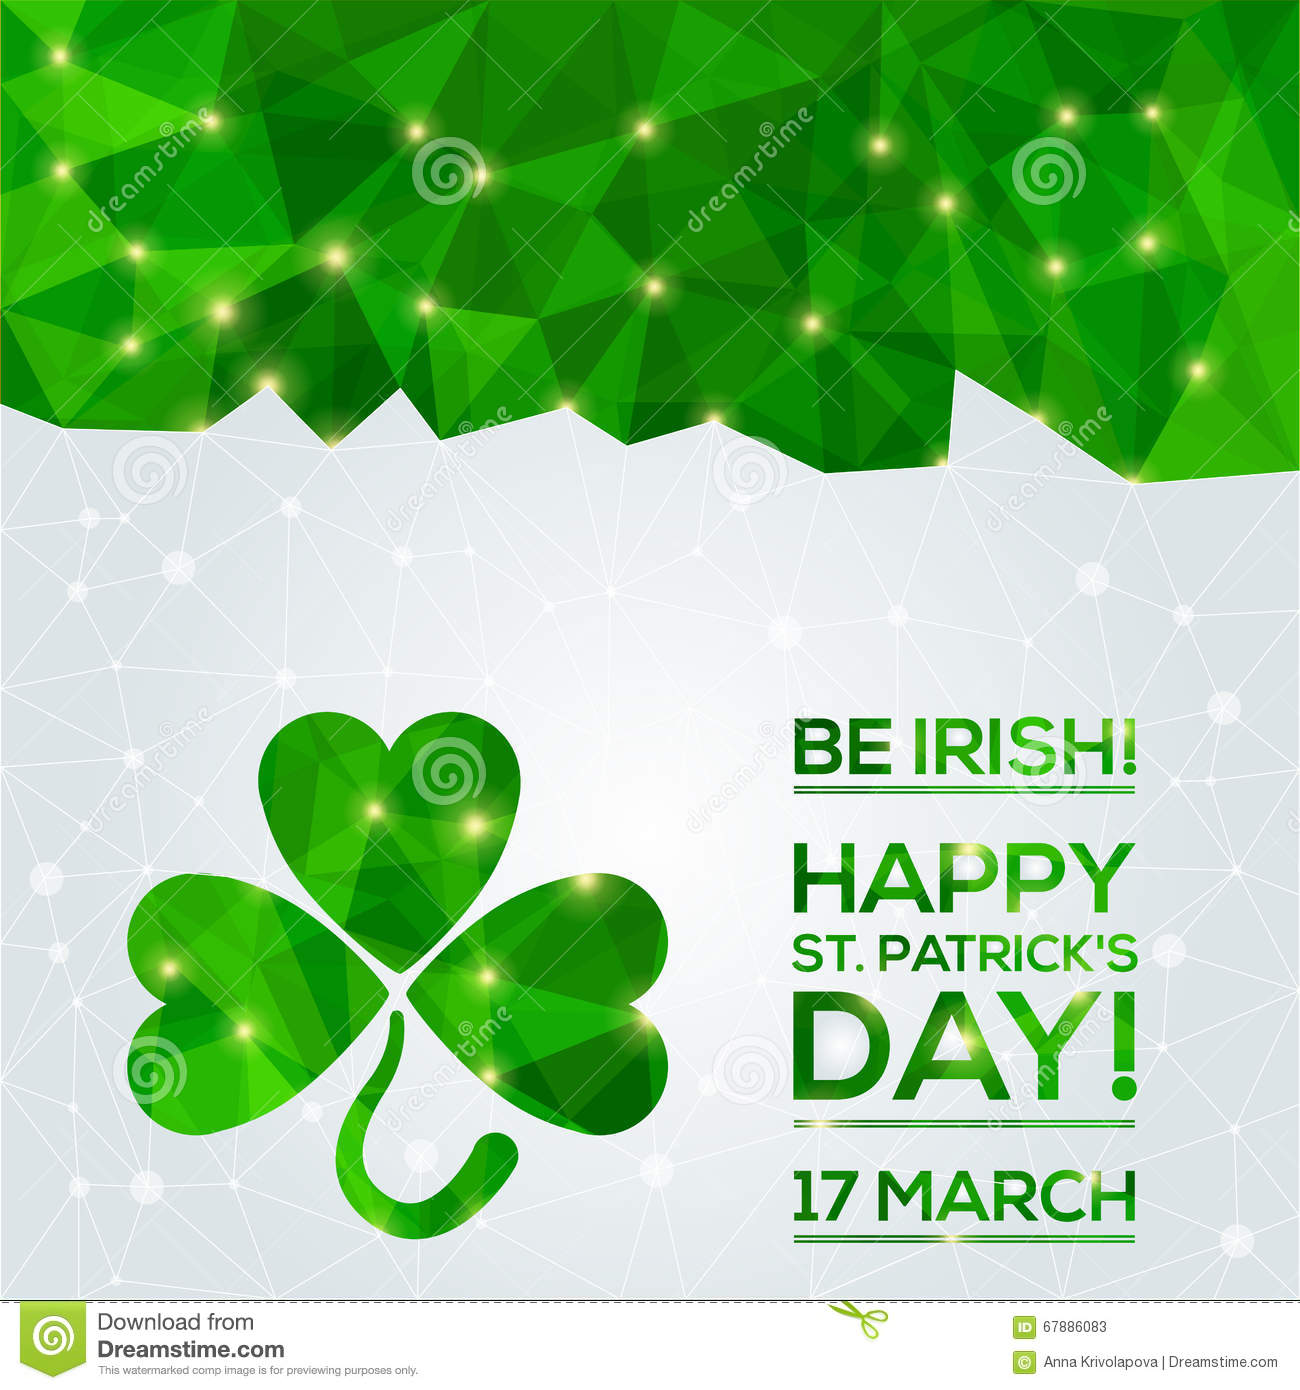 Happy St. Patrick s Day Greeting card.